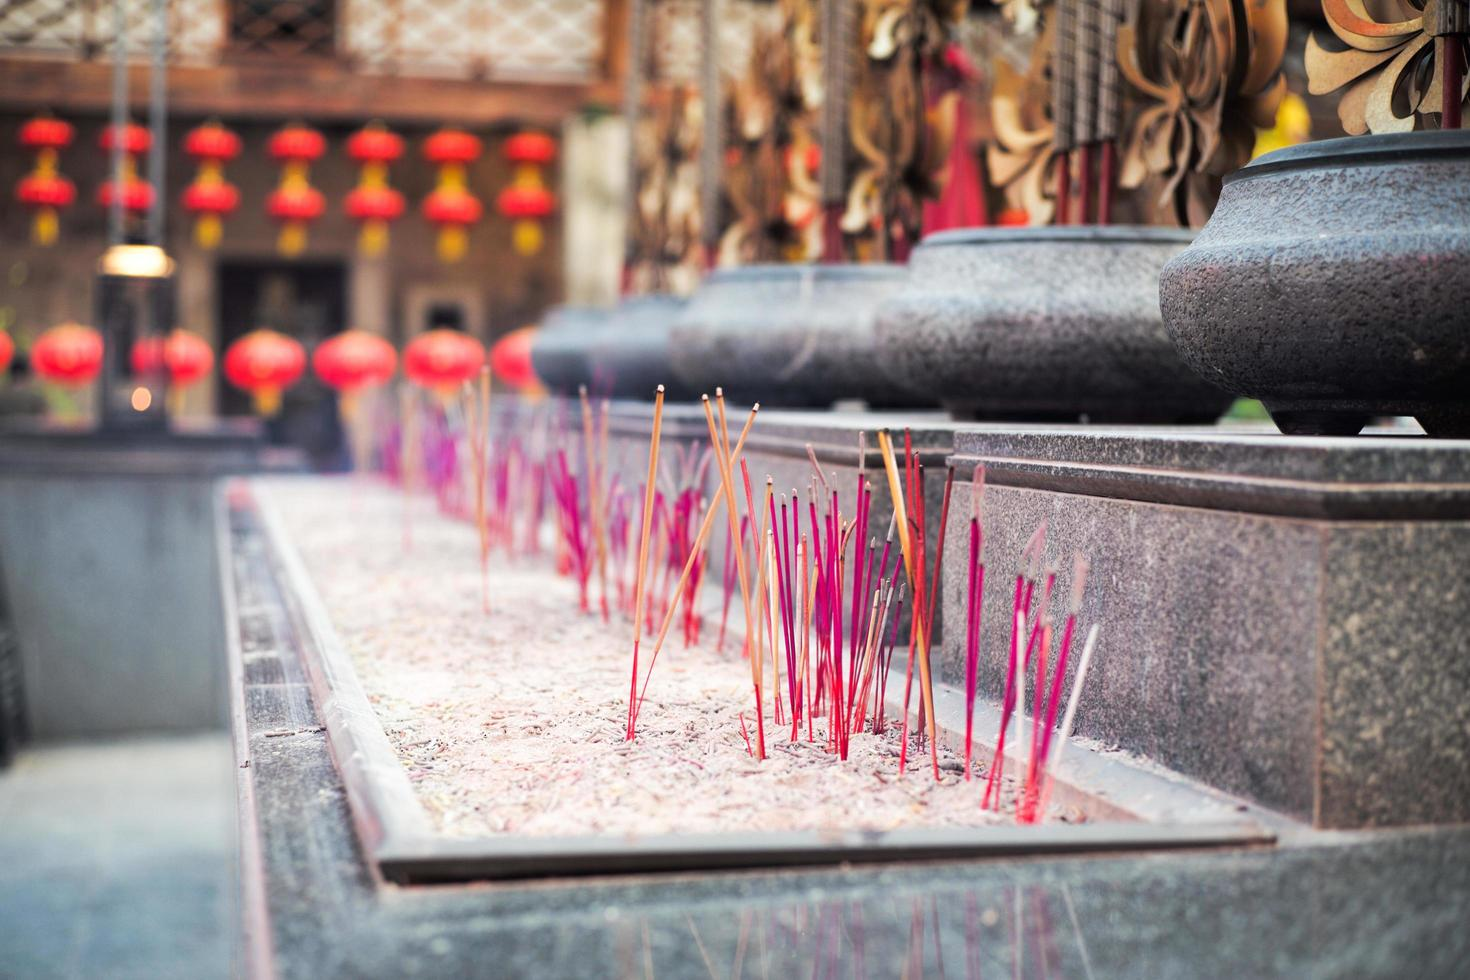 Selective focus on the bundle of fired incenses put in a sand tray with a blurred crowd of incense sticks in the background photo